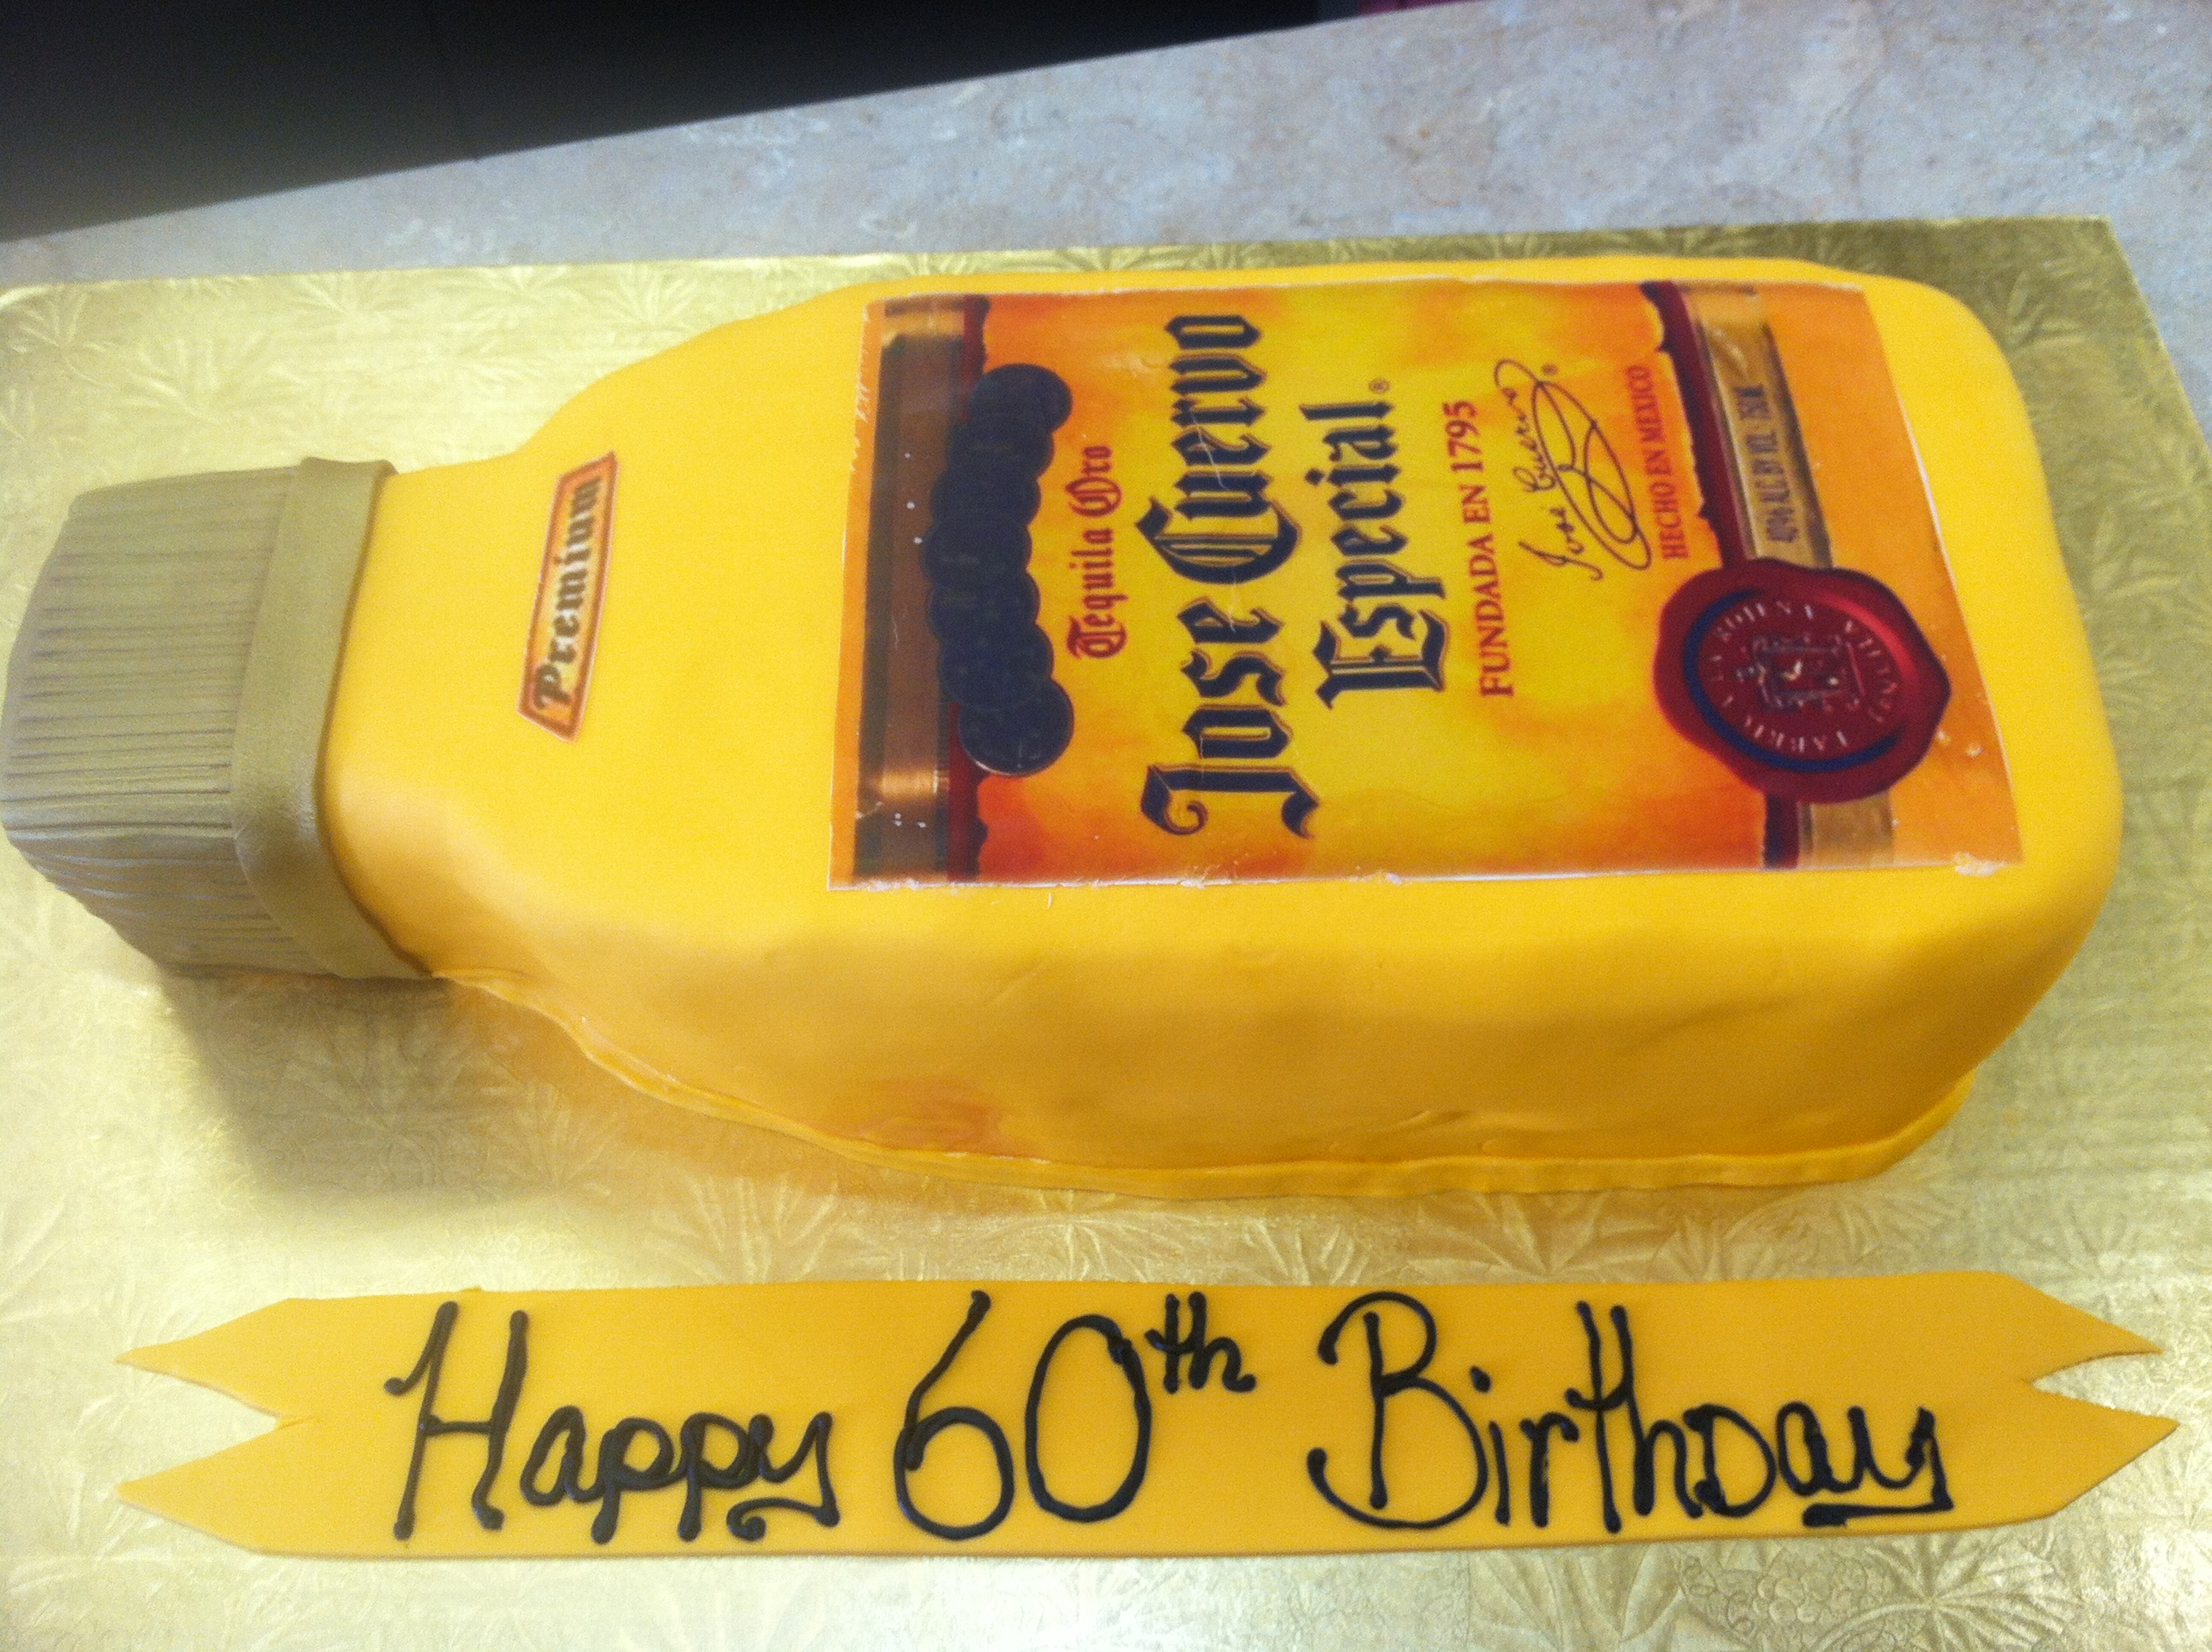 Jose Cuervo Especial Bottle Cake